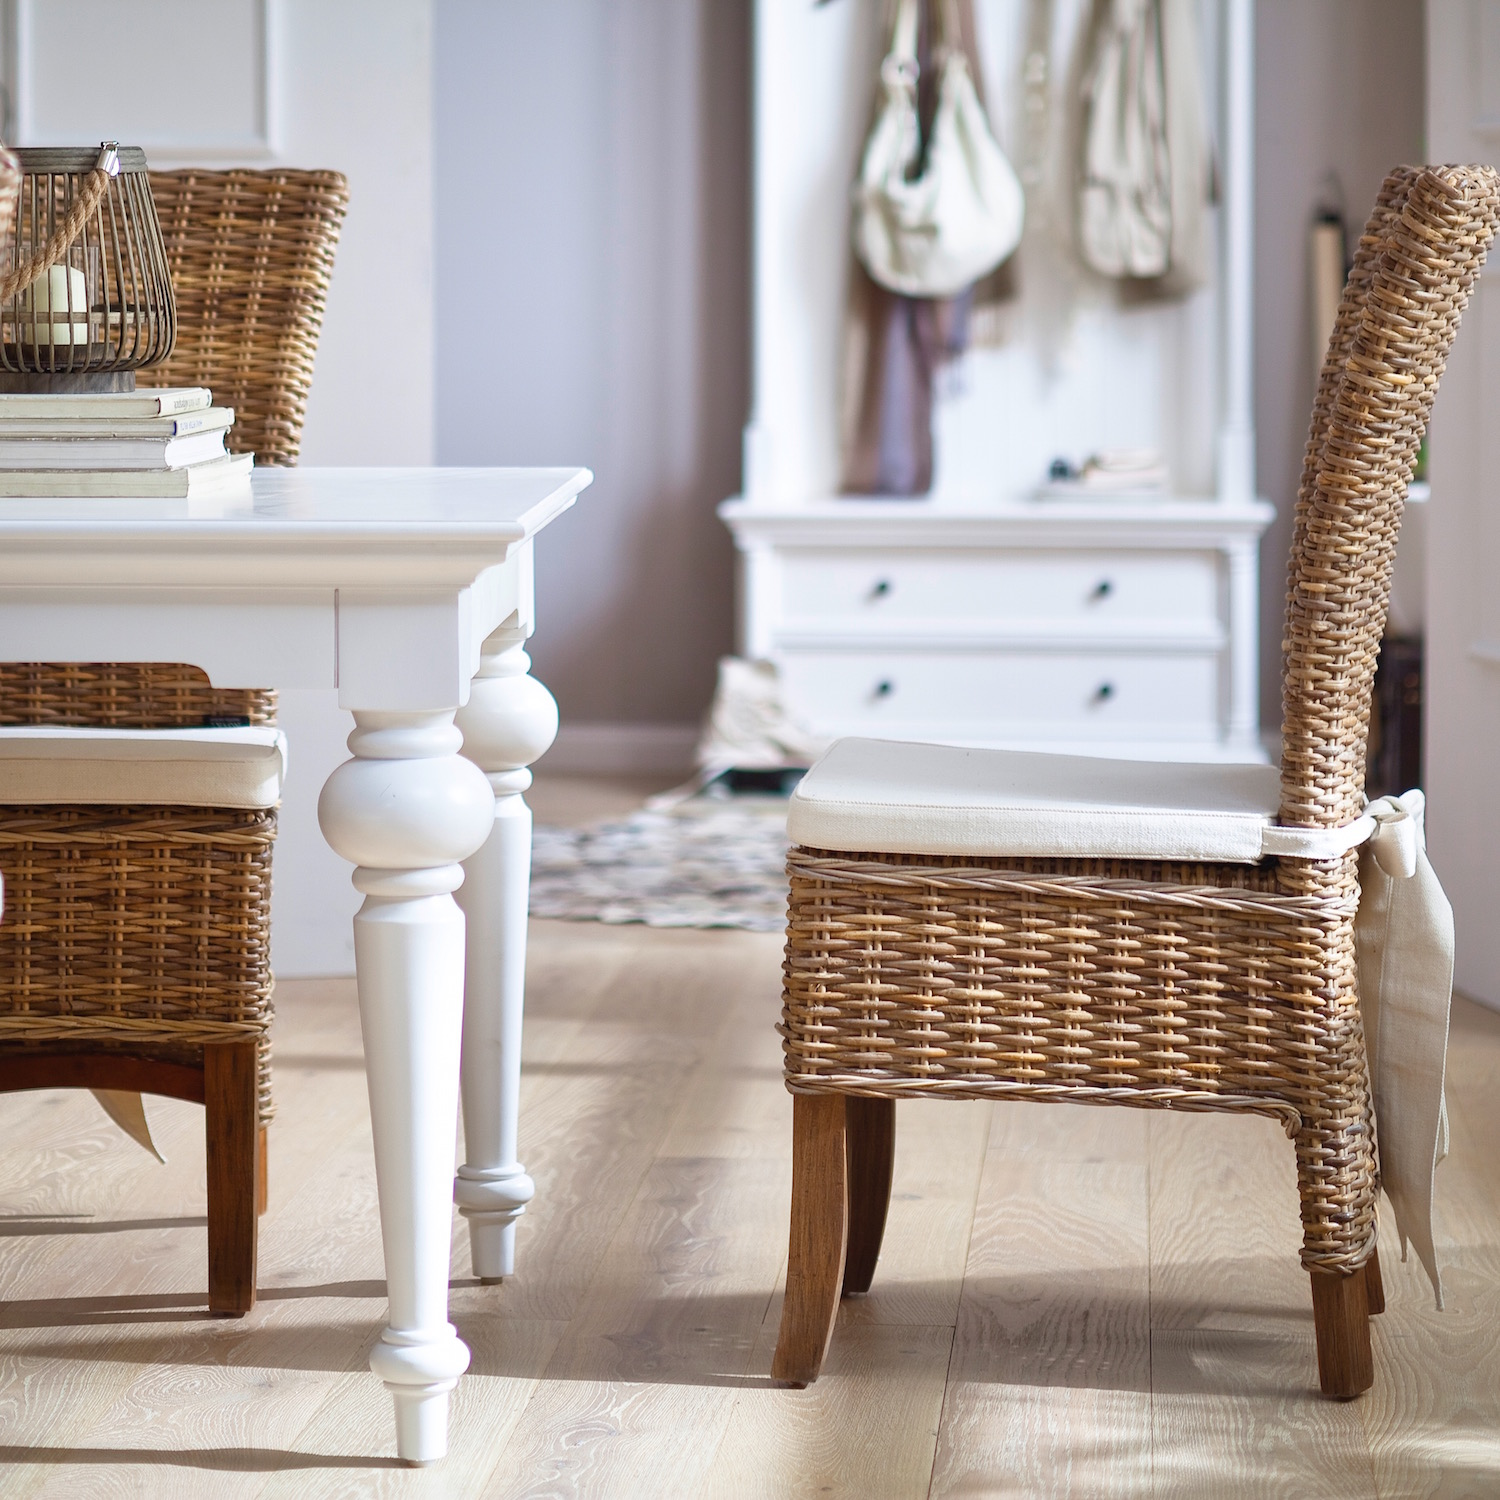 A Perfect Pairing: White Wood Furniture and Rattan